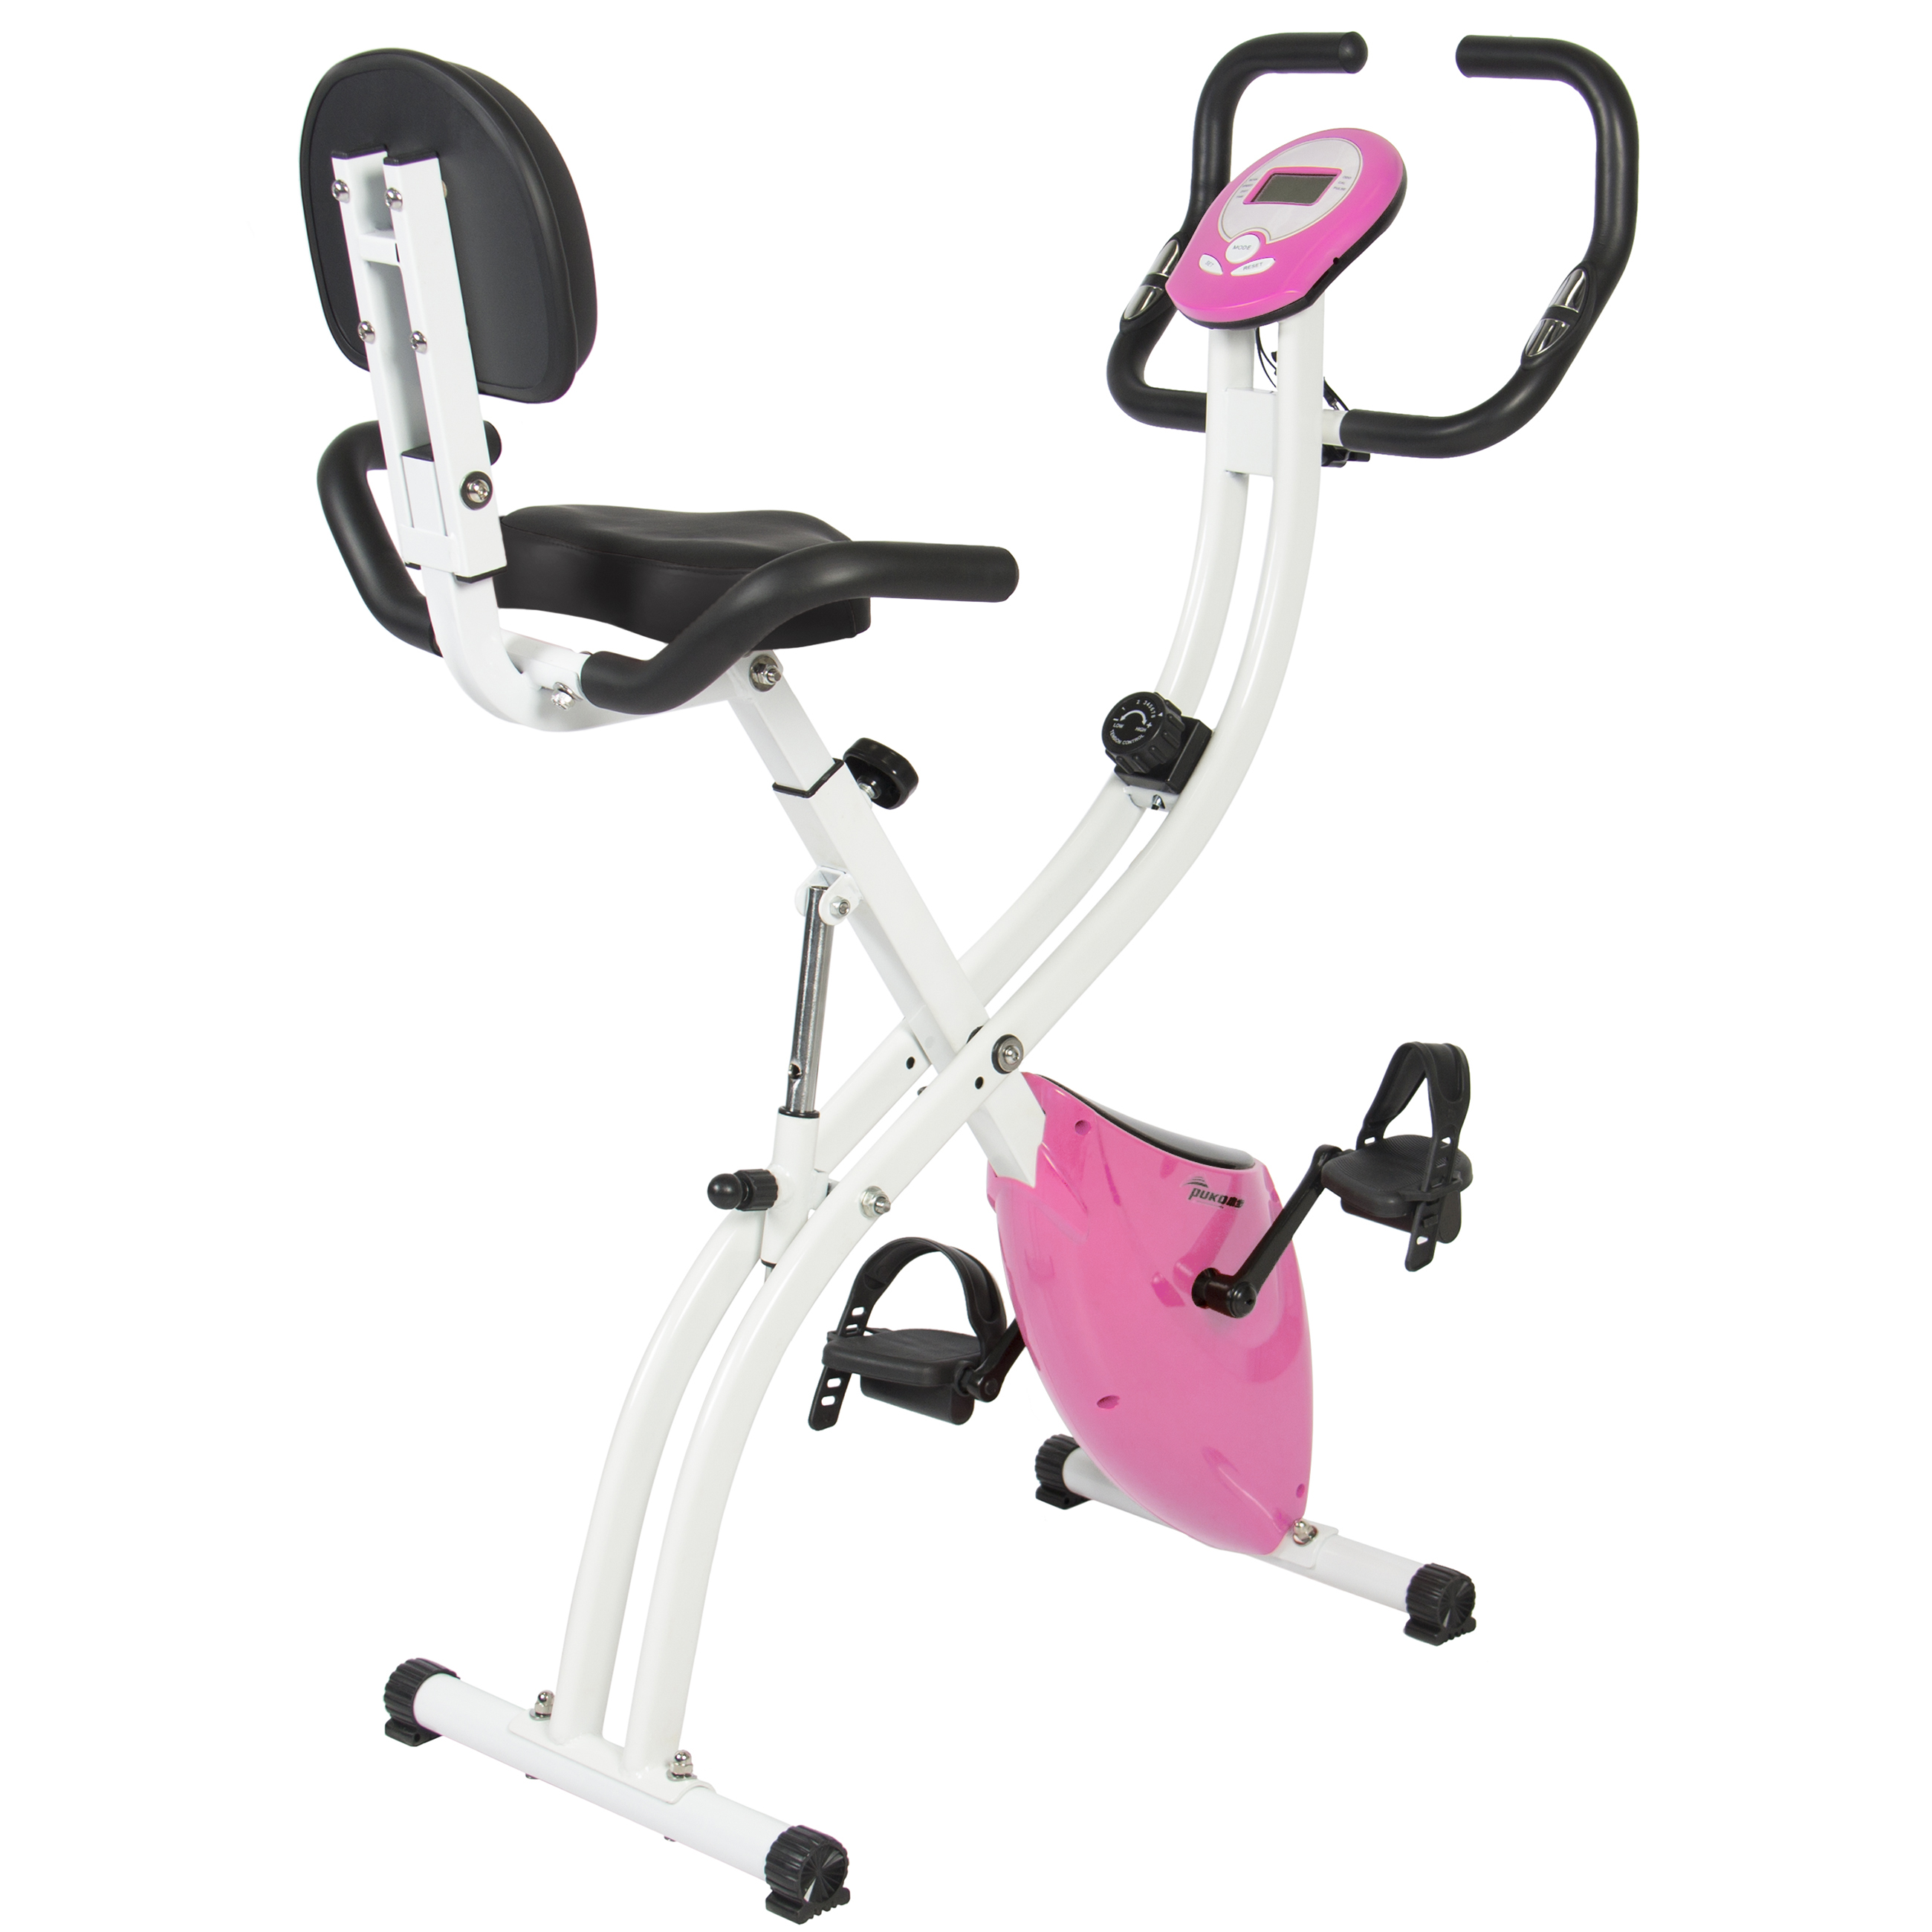 Best Choice Products Folding Adjustable Magnetic Upright Exercise Bike Fitness Upgraded Machine (Pink) by Best Choice Products